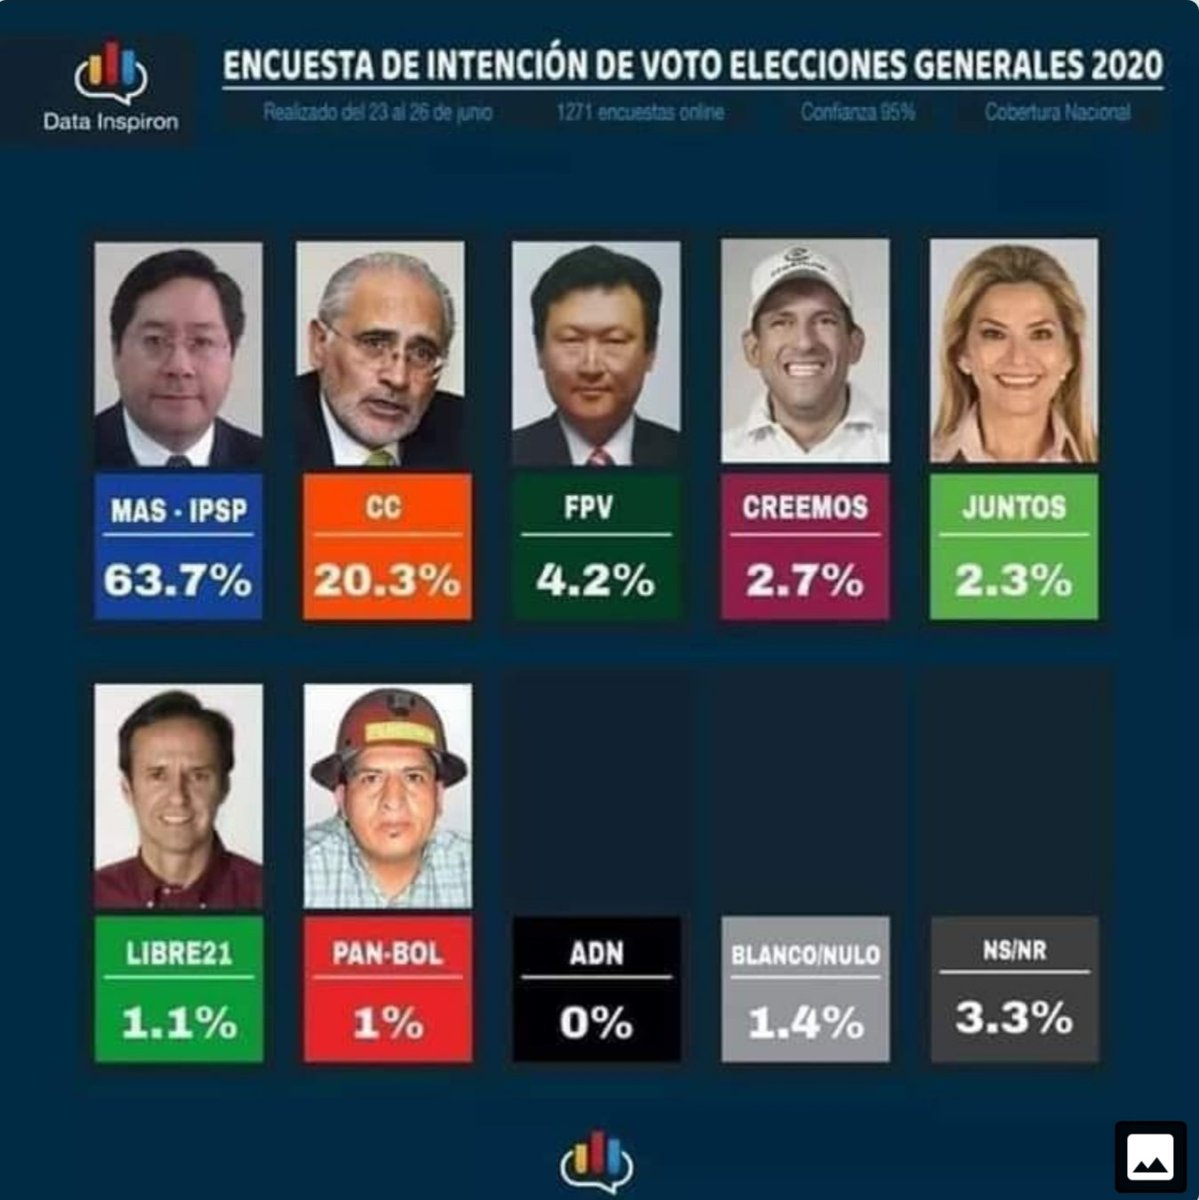 Anez, Camacho,& Mesa are desperate to stop the elections because the people heavily support the MAS & their policies. This also shows the peoples discontent with the Anez regime #ElAlto #LaPaz #Cochabamba #Chuquisaca #Bolivia #Chapare #Yapacani #Tarija #Sucre #Oruro #EleccionesYa<br>http://pic.twitter.com/56lEZdgEwr